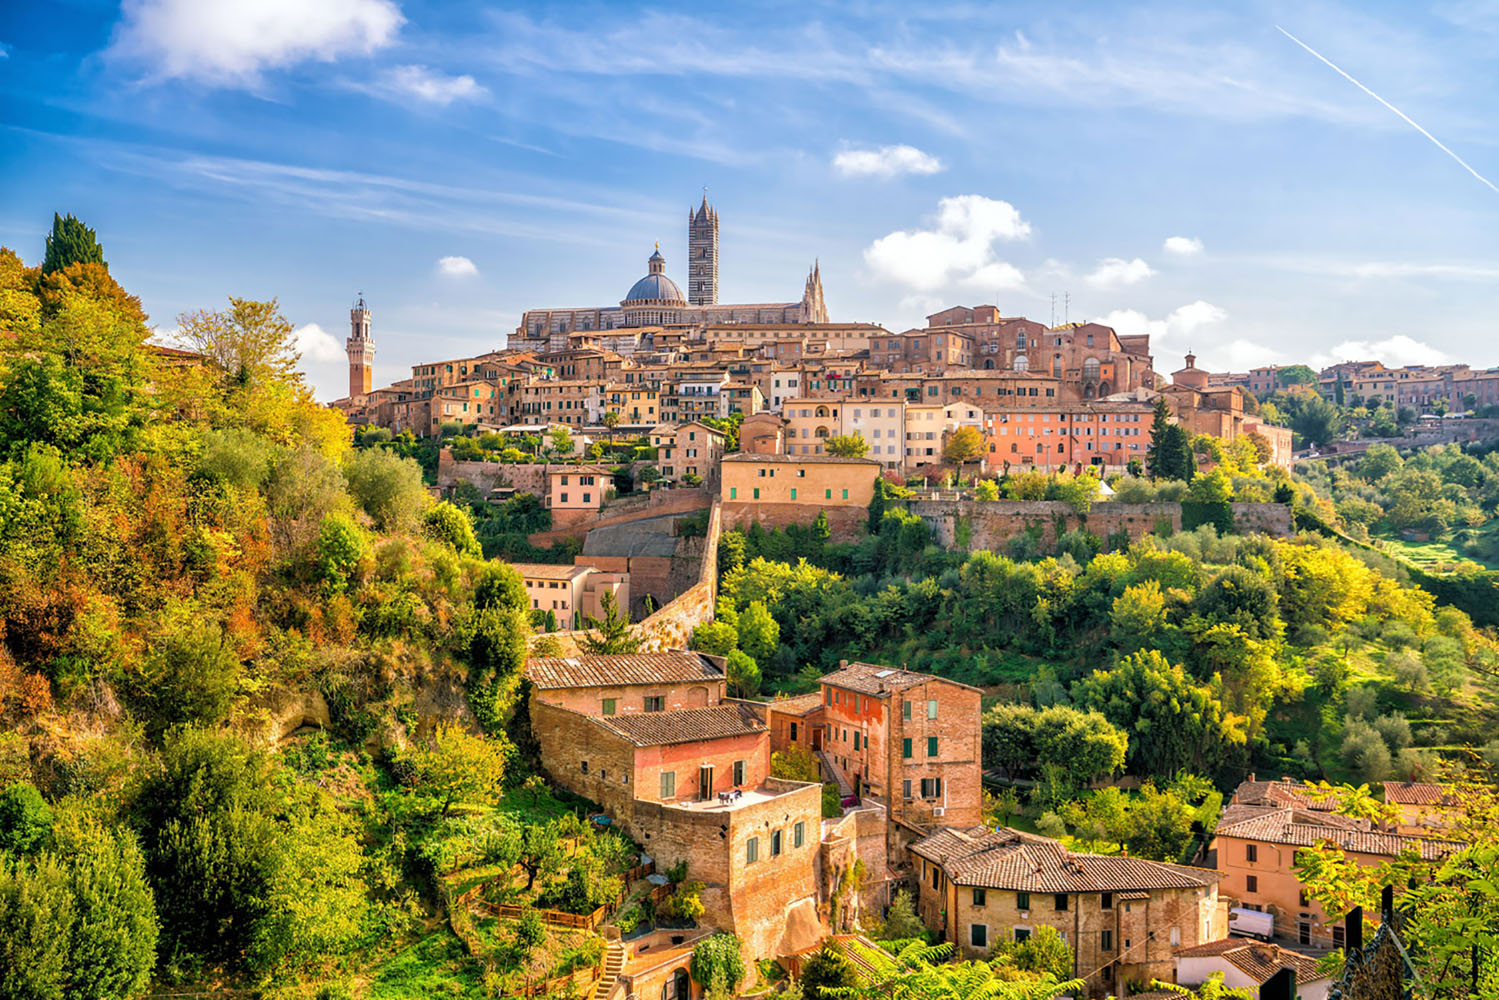 The skyline of Siena in Tuscany, Italy.